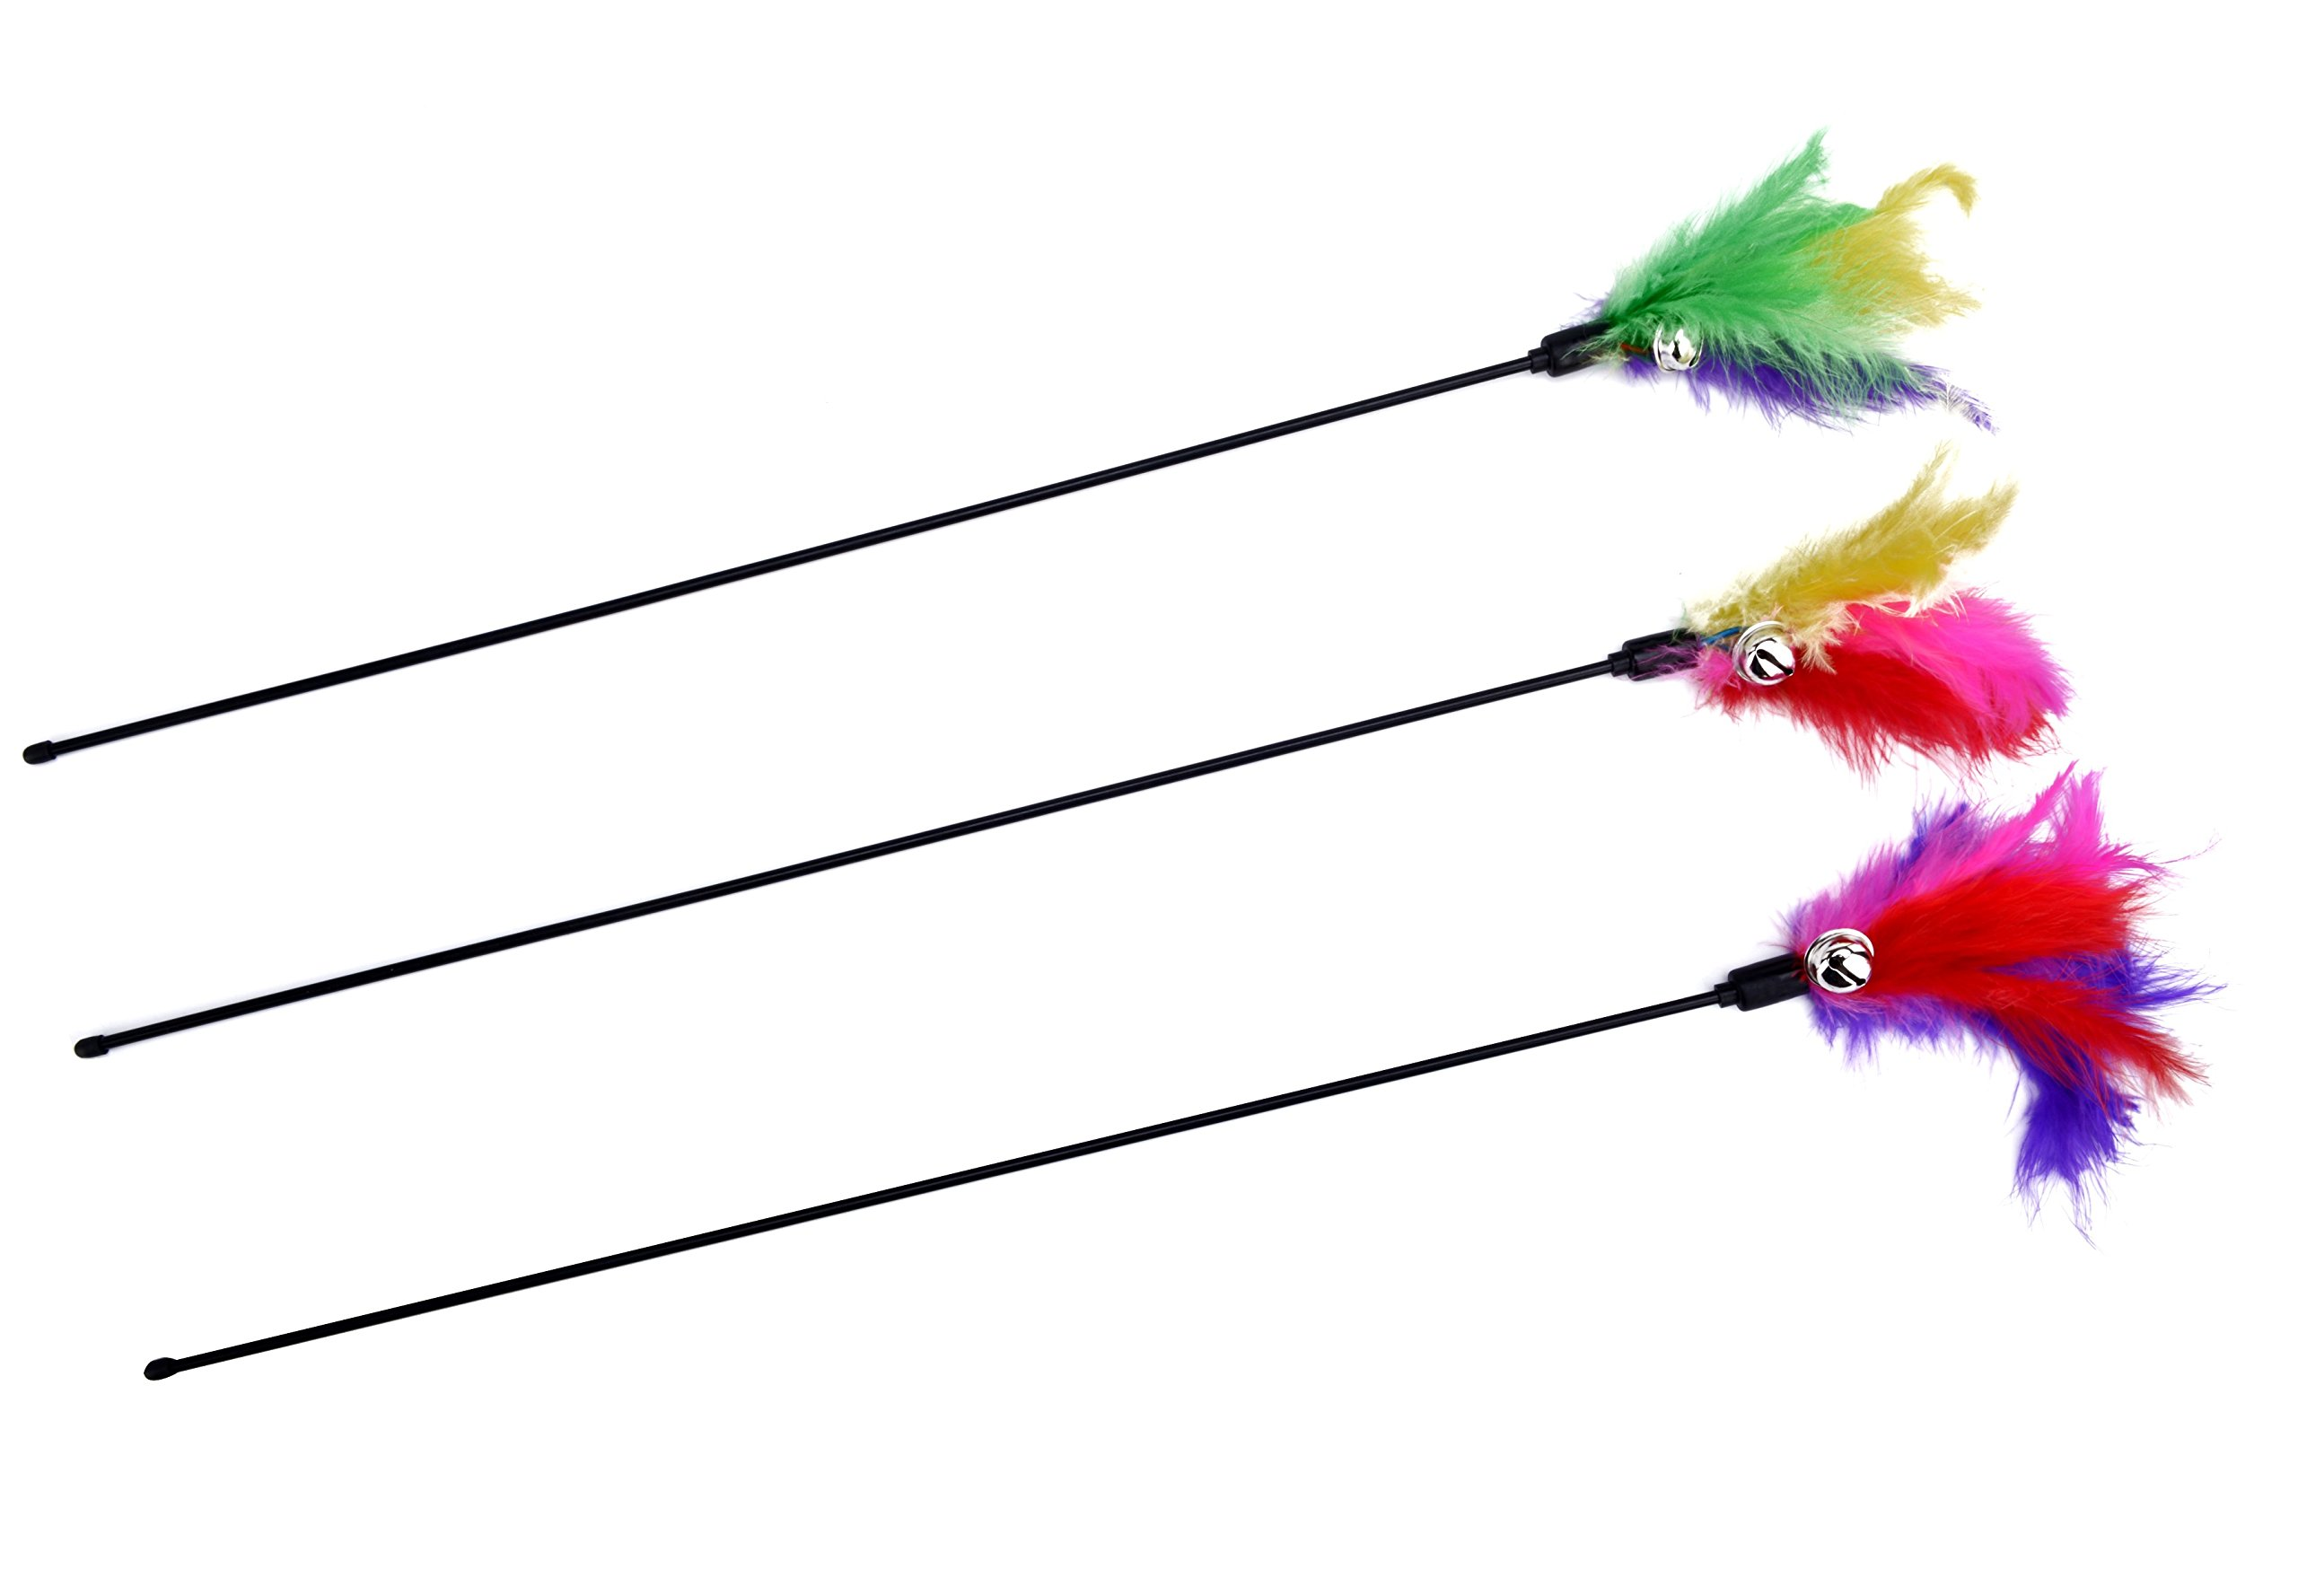 BINGPET Cat Toys Color Vary Feather Teaser and Exerciser Wand for Cat and Kitten, 3 Piece